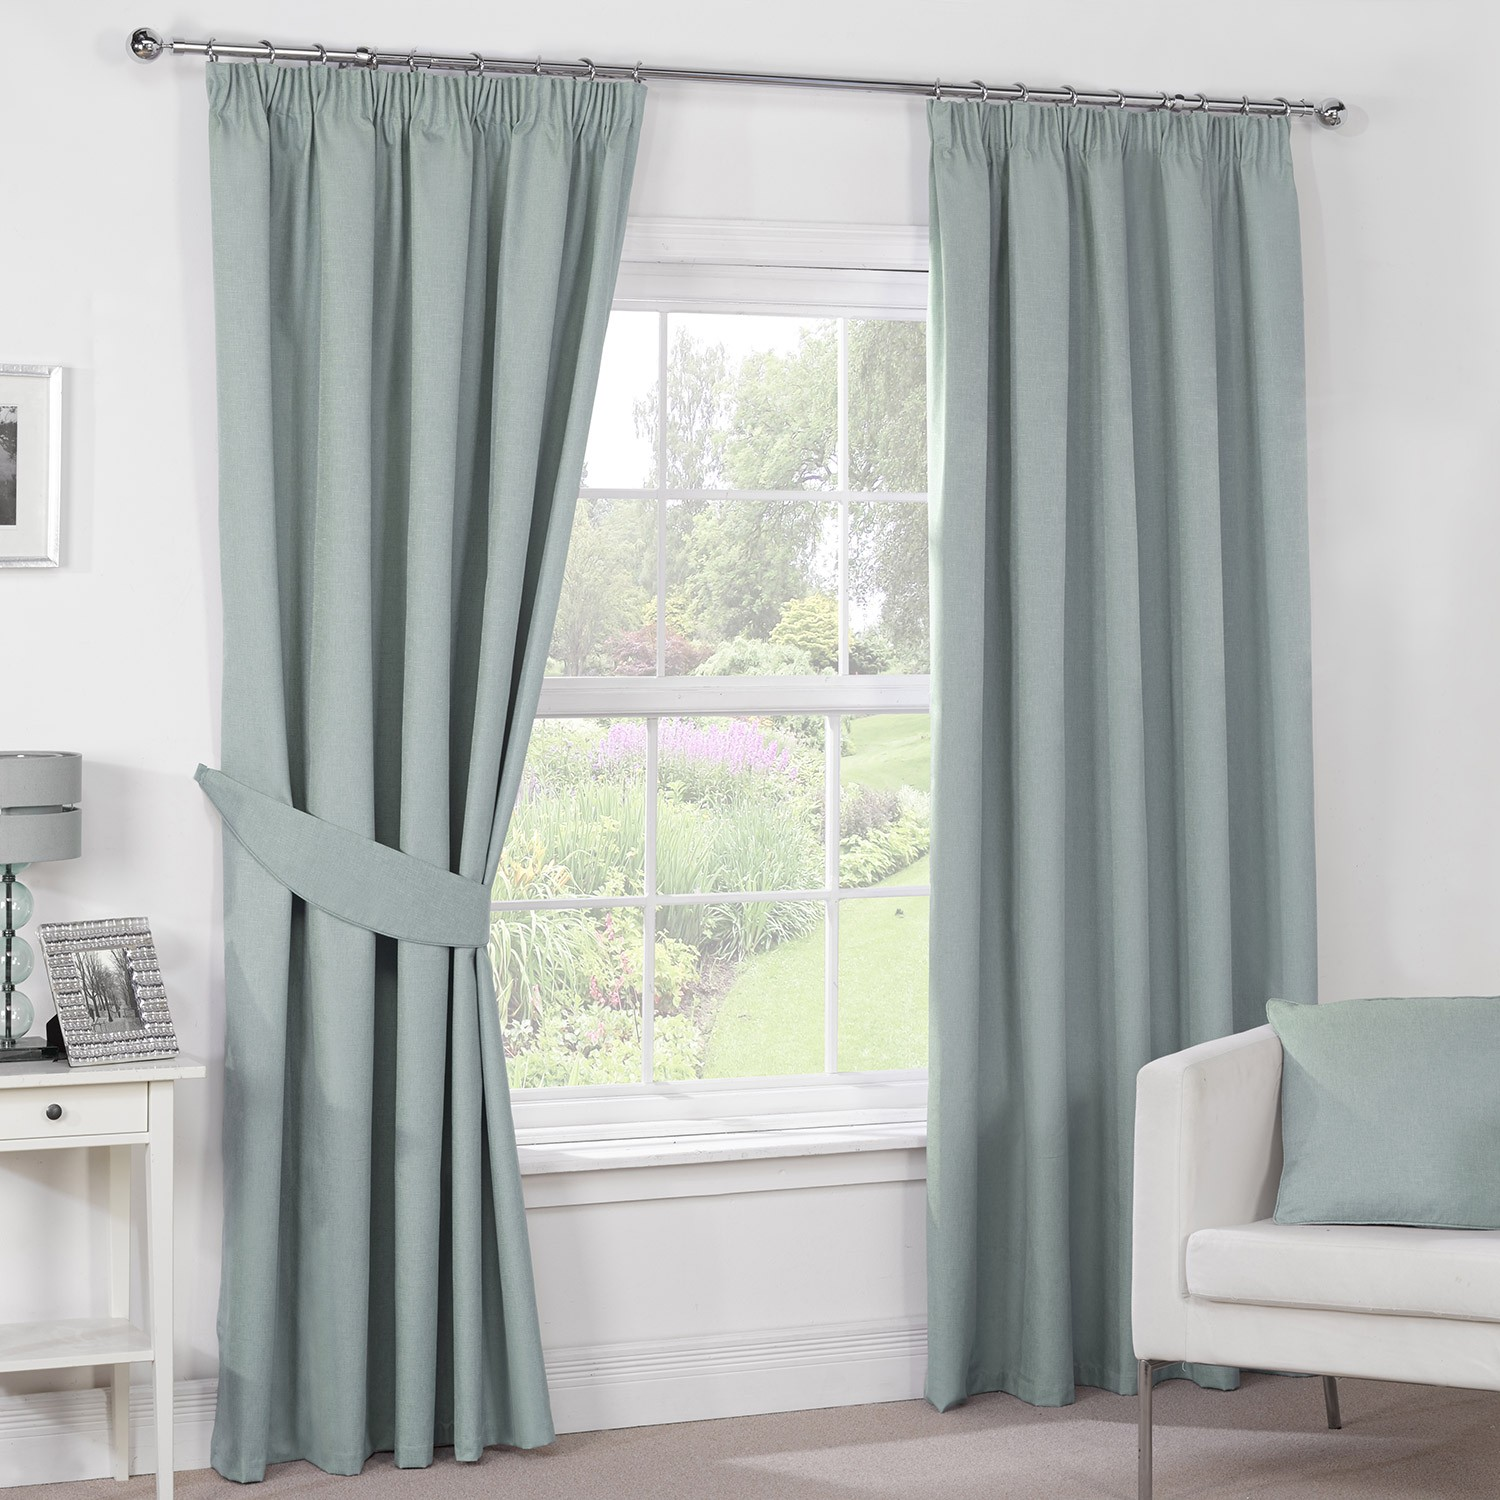 How To Diy Curtains Do Curtain Swags On A Bay Window Swag